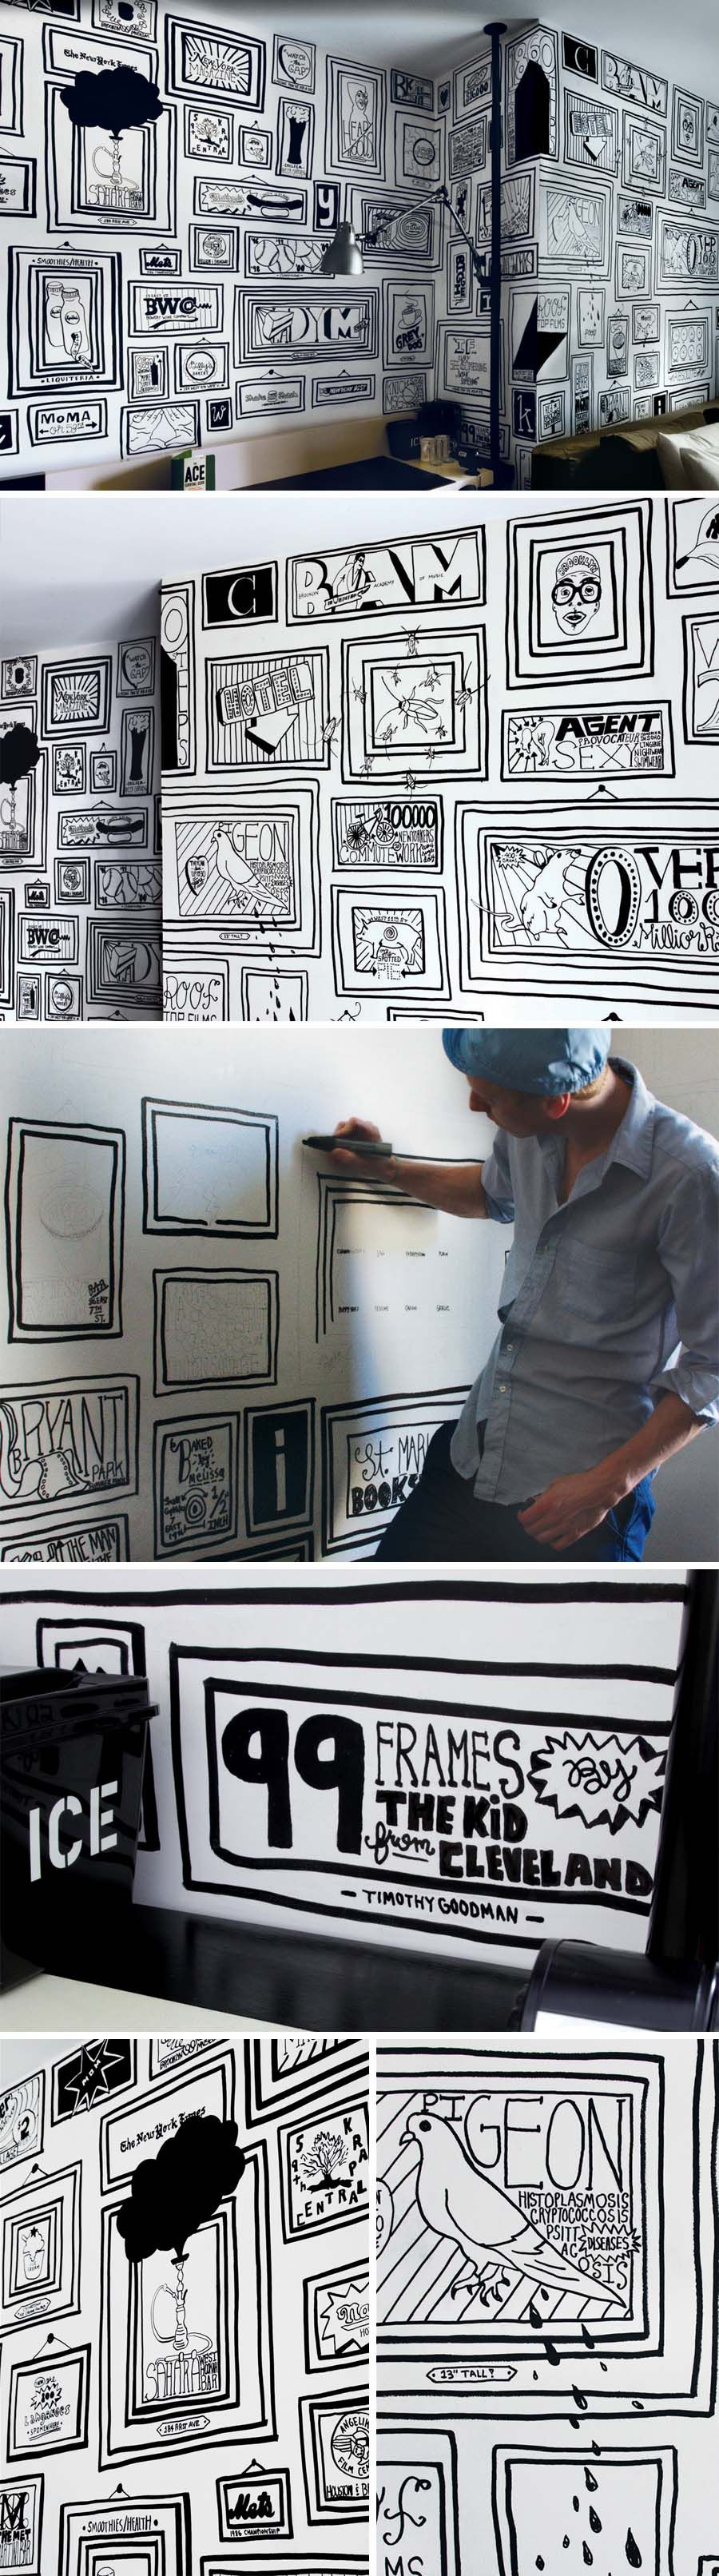 This a cool idea for art work in a space.  If it is a temporary space for you, cover walls with white butcher paper, then go to town drawing.